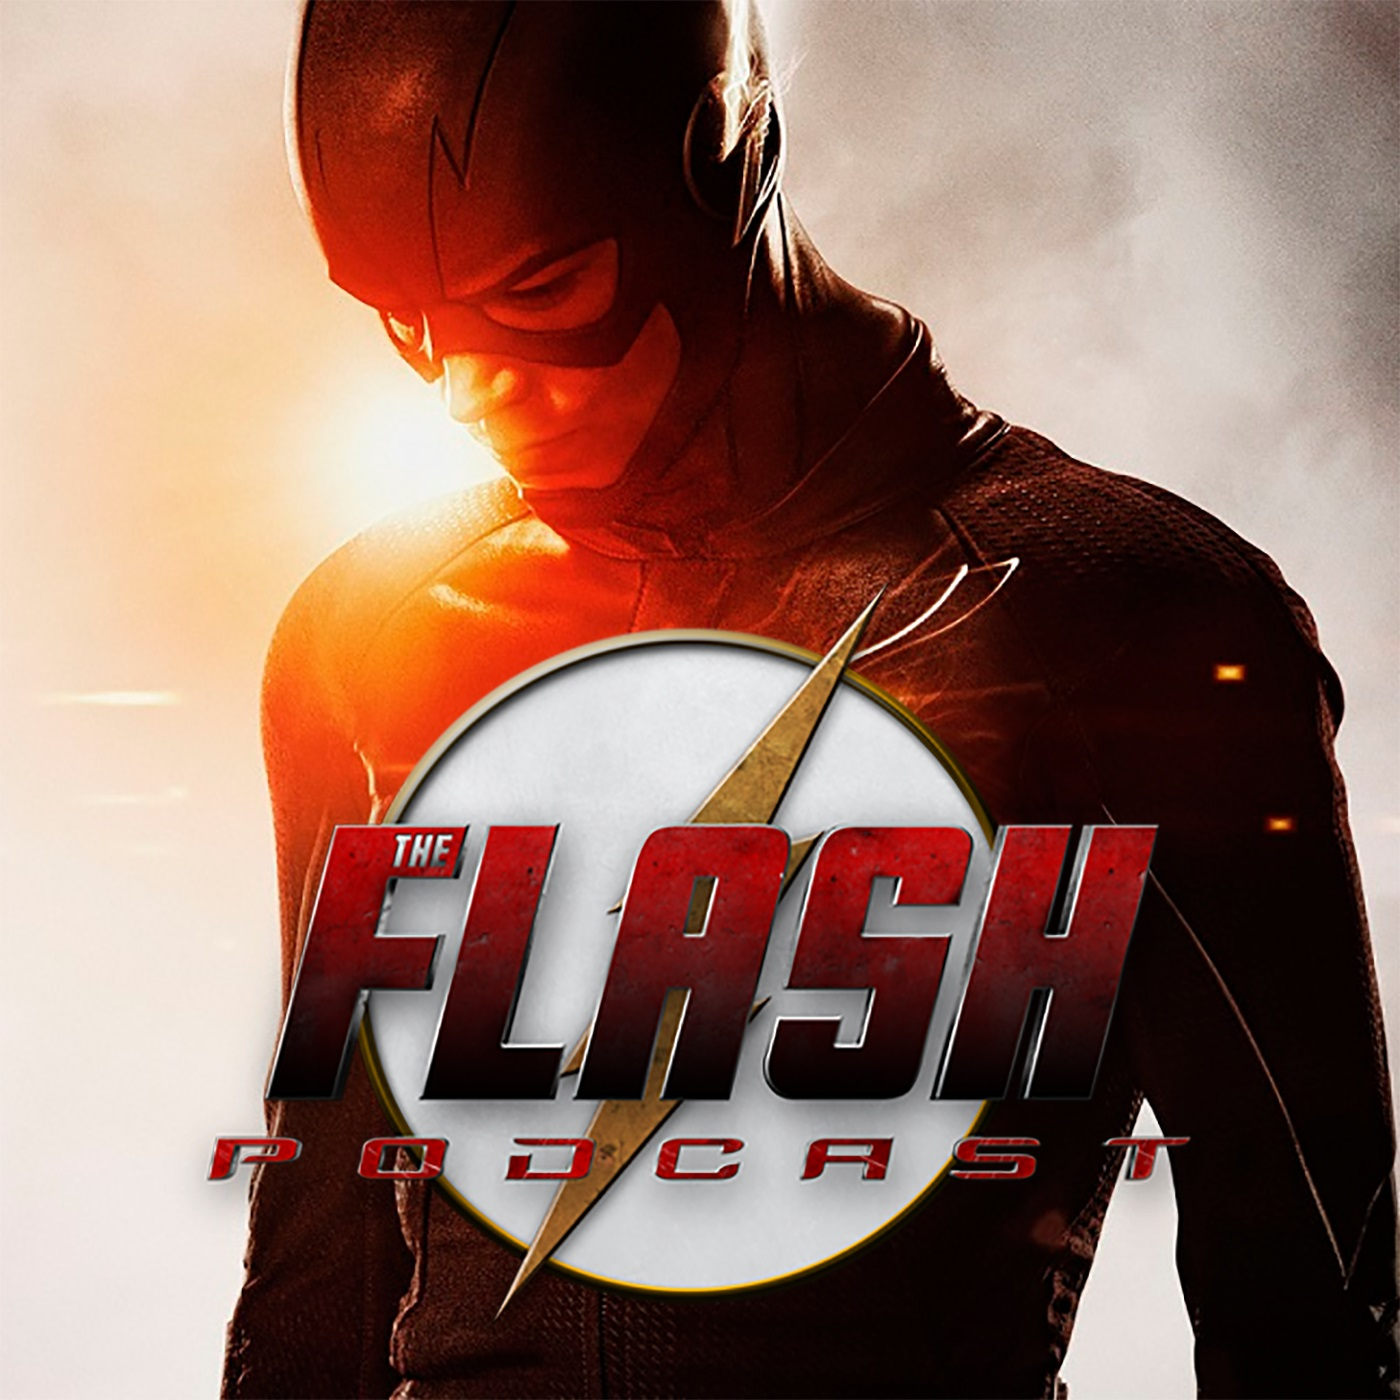 The Flash Podcast Season 2.5 - Episode 9: Henry Allen/Jay Garrick In Season 2 & TCA 2016 News